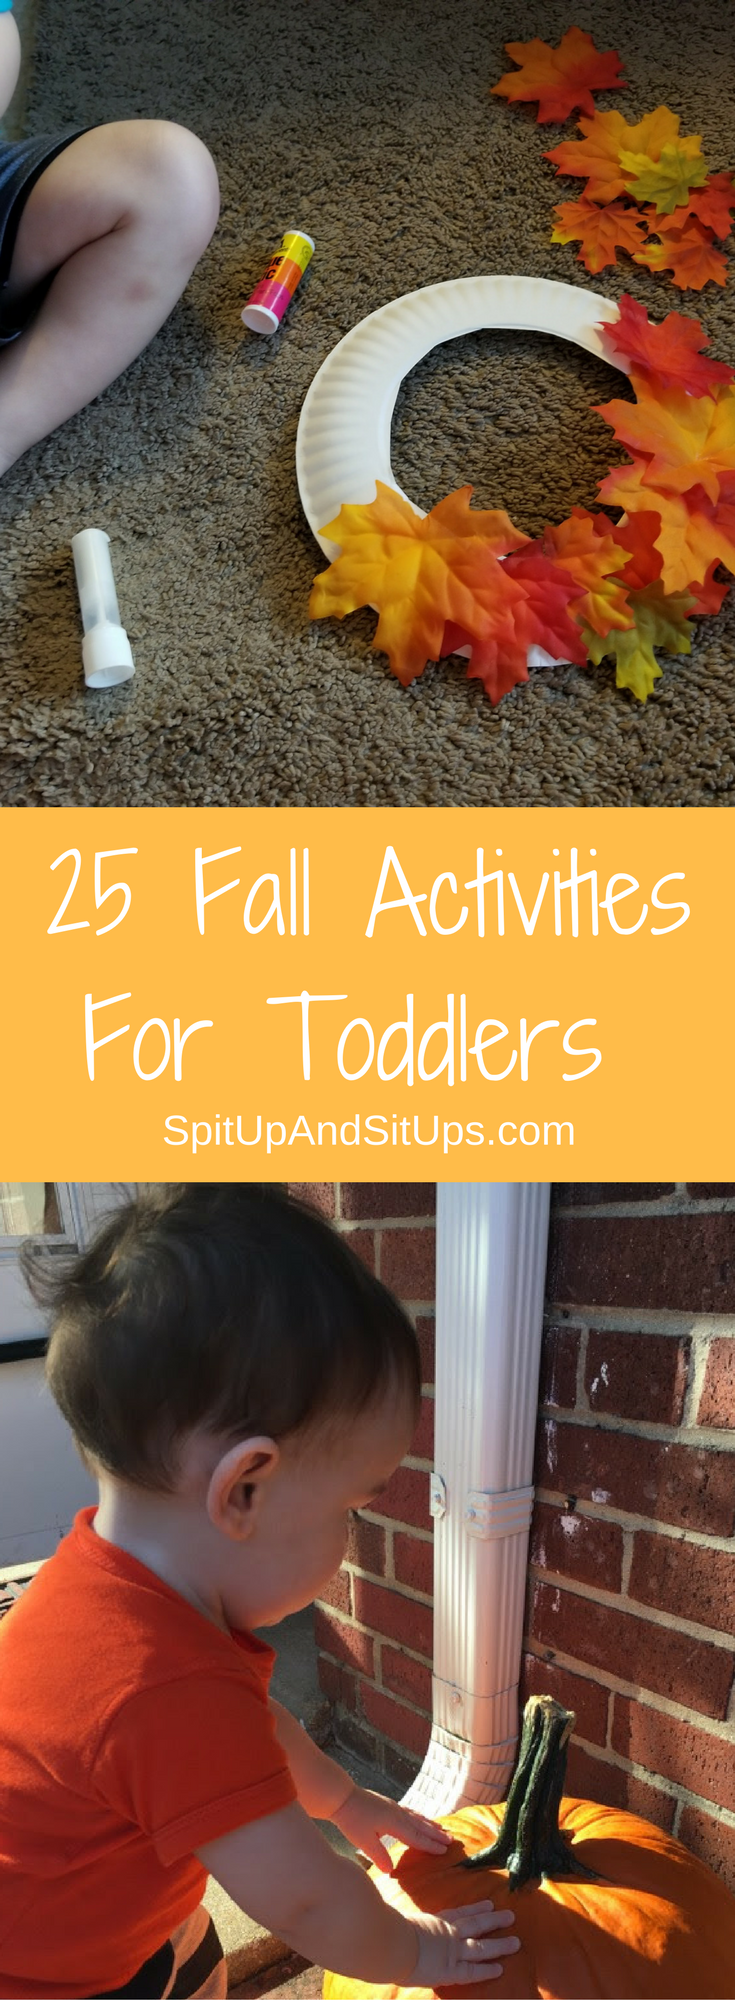 Fall colors activities for toddlers - 25 Fall Activities For Toddlers